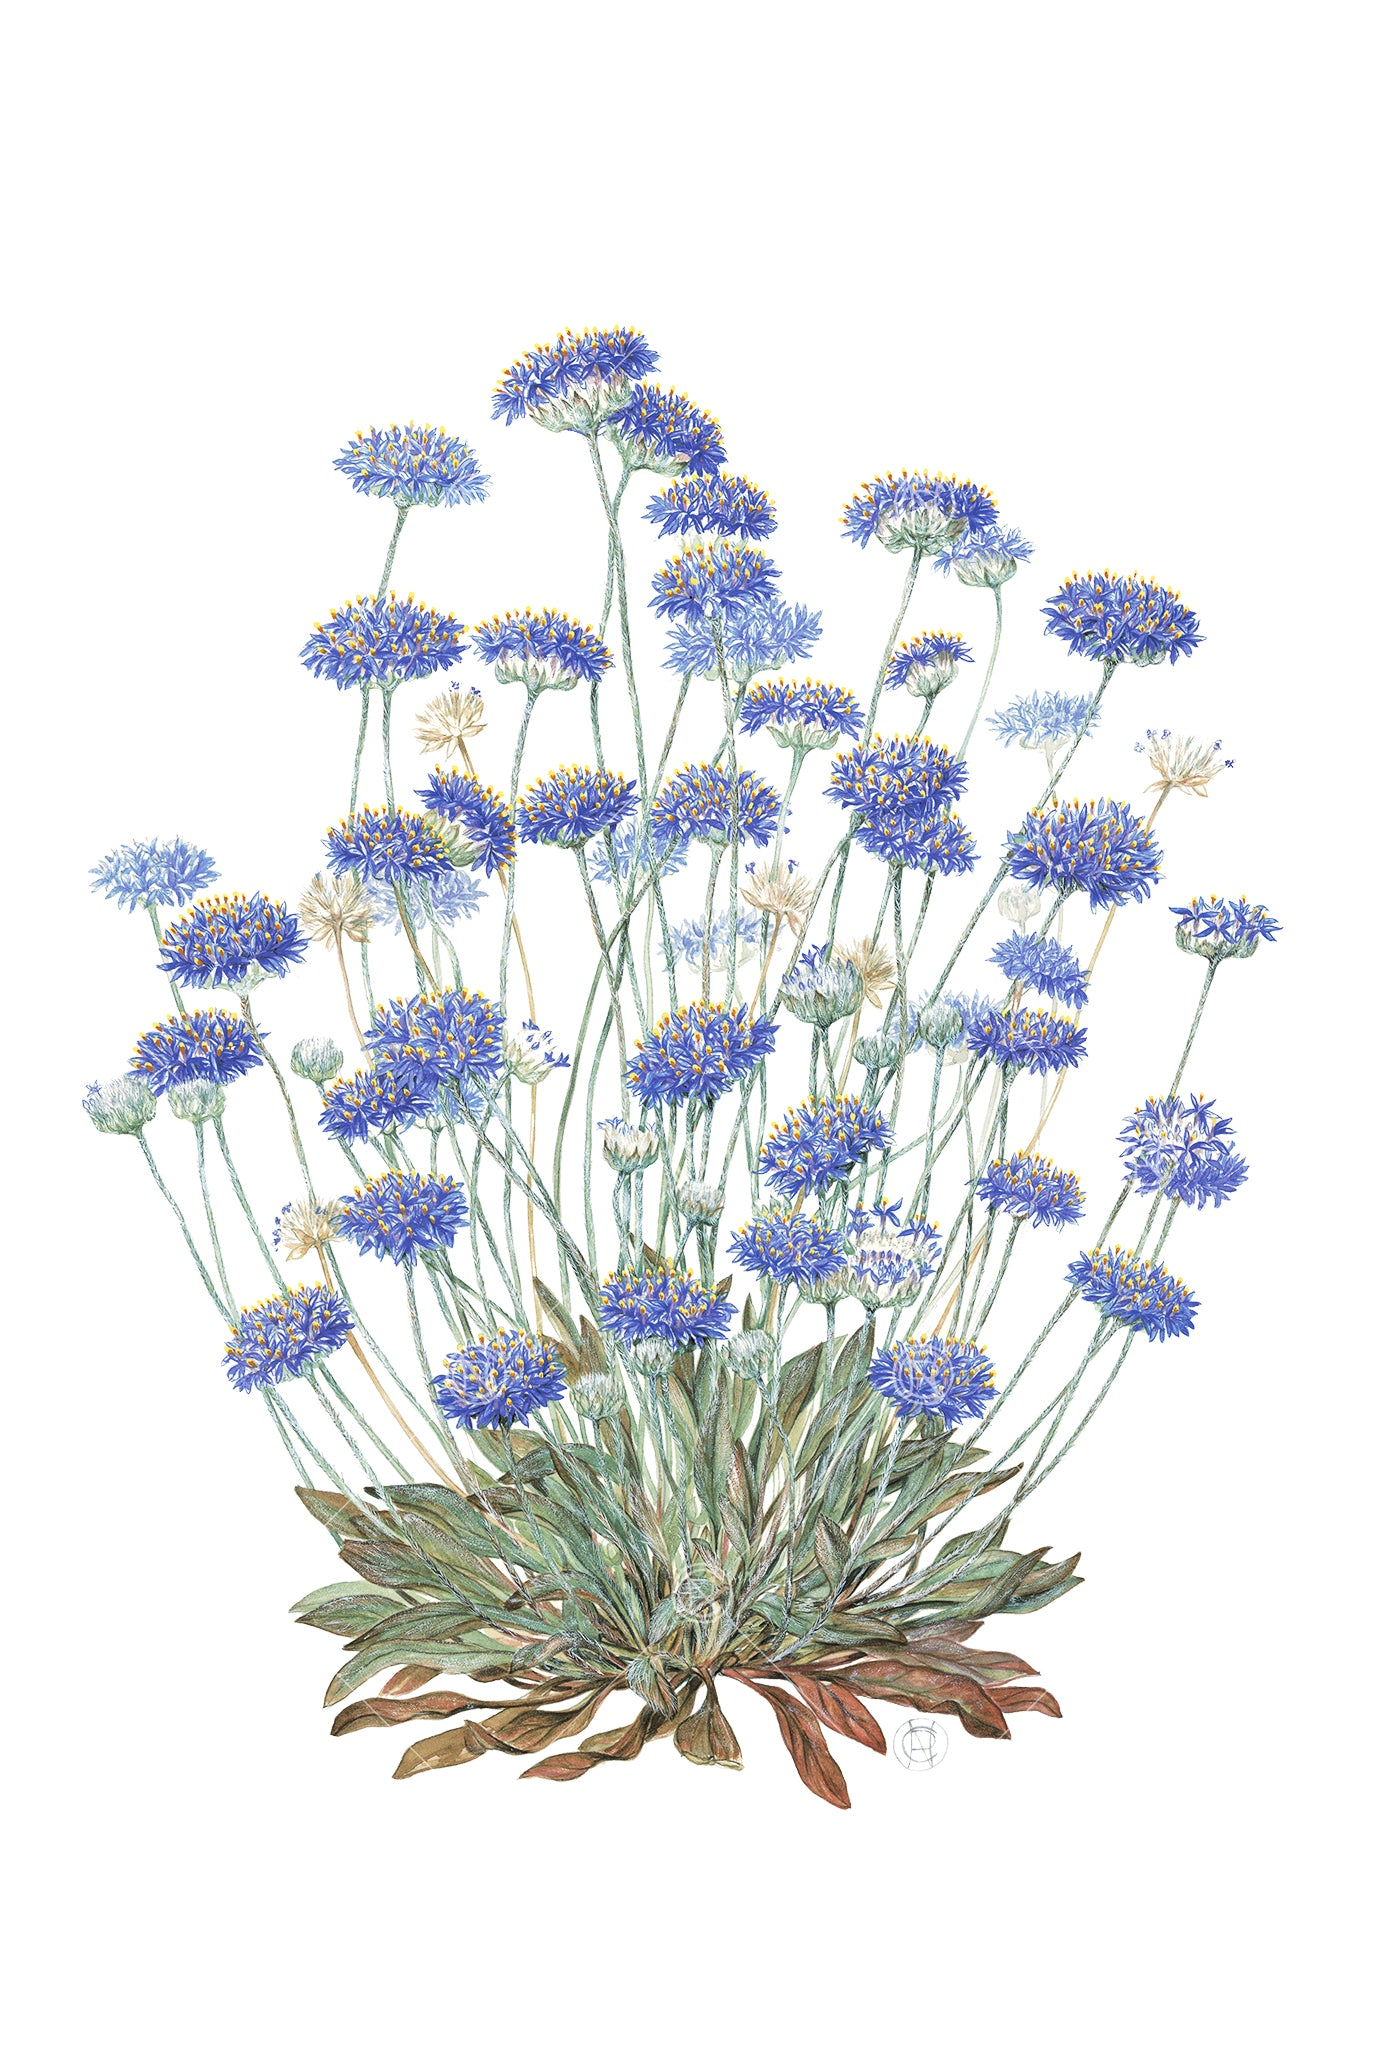 Brunonia australis, Native Cornflower